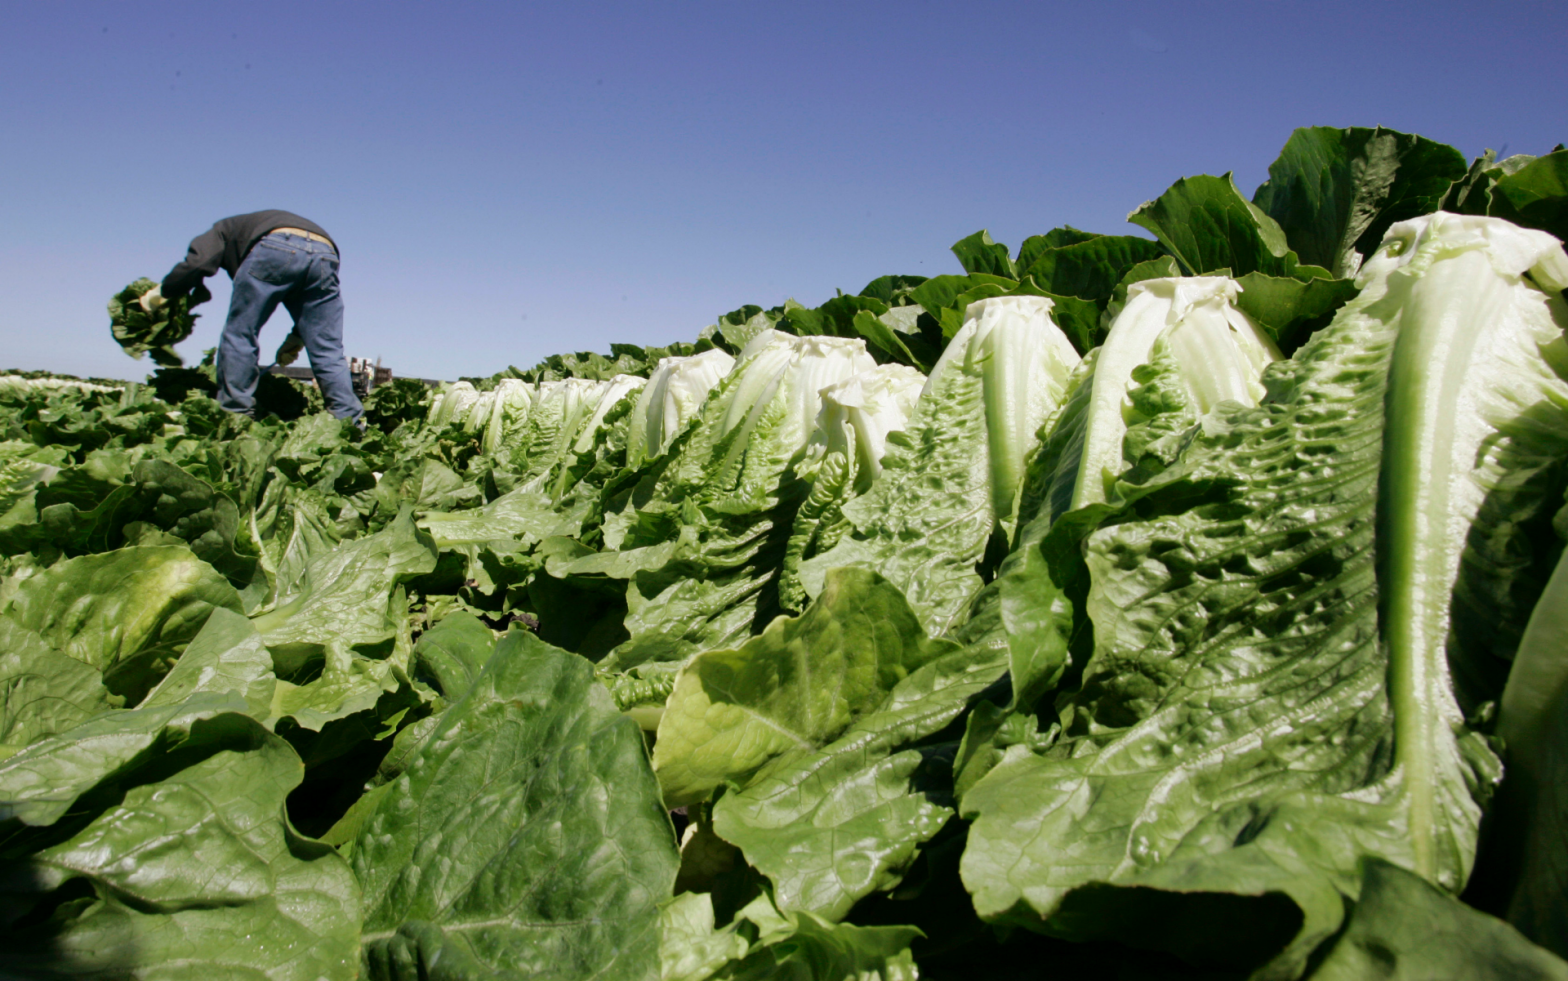 Romaine lettuce E. coli outbreak tied to California region hits 67 cases – Fox News